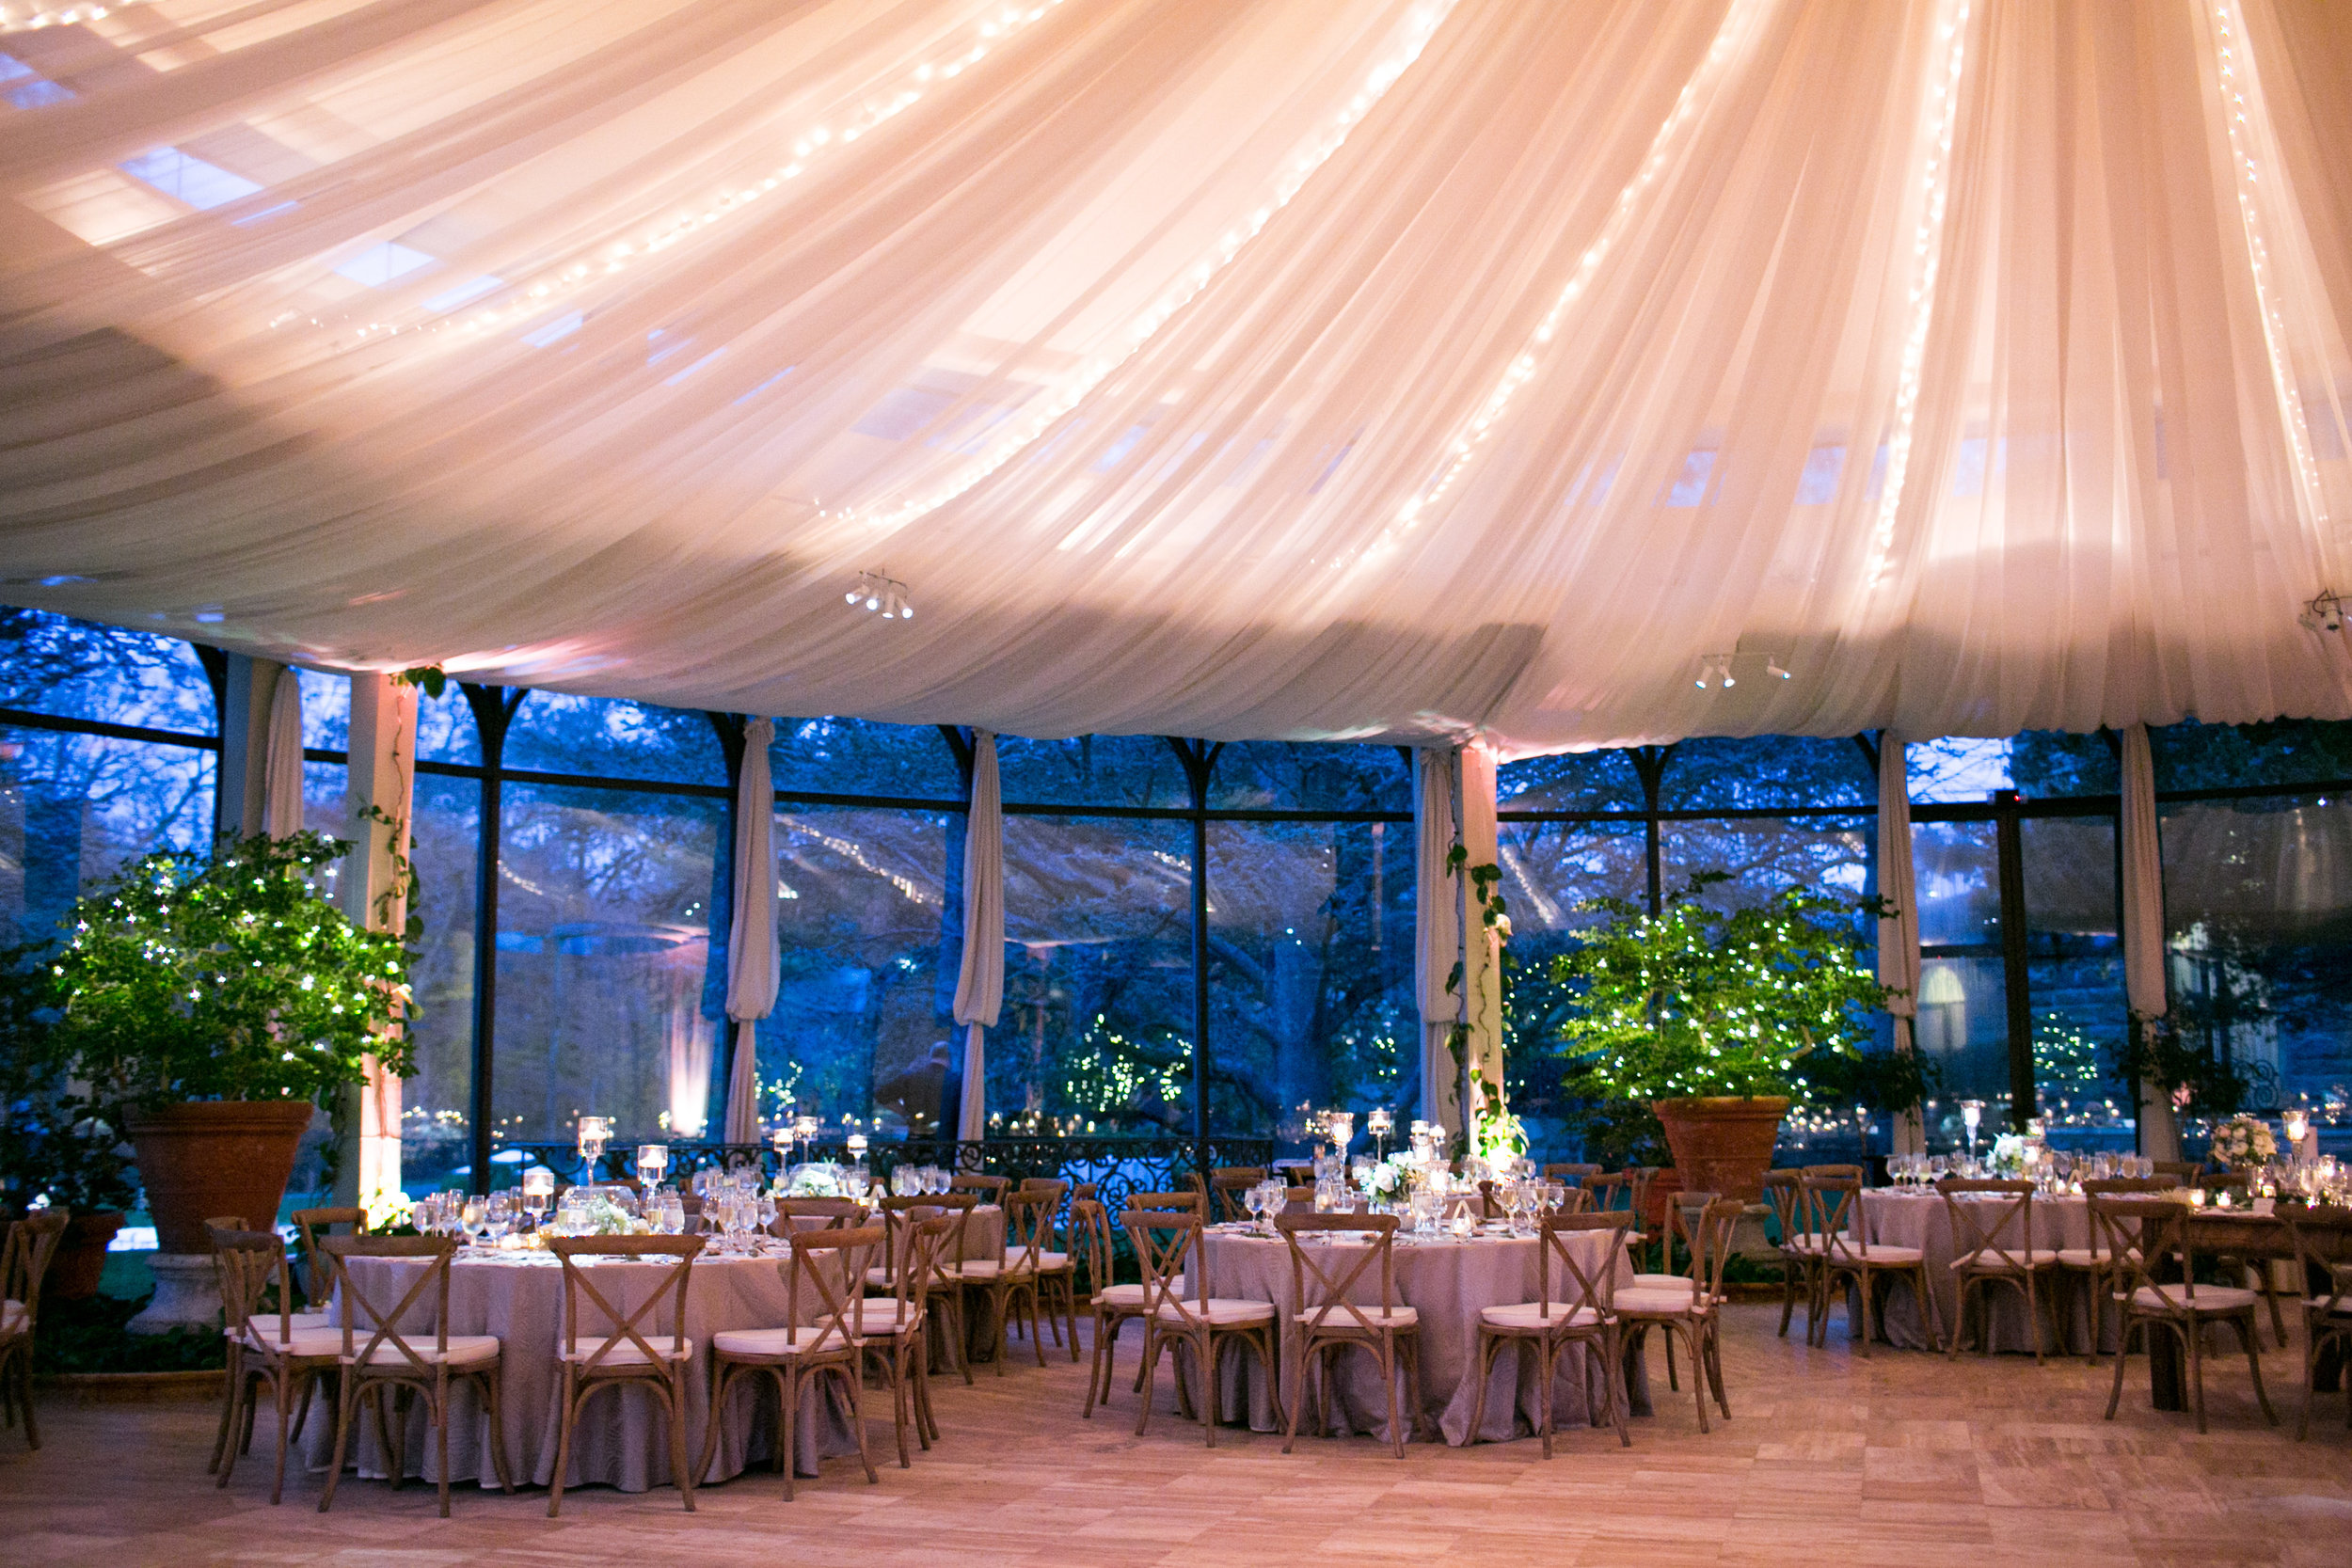 This reception room is to die for!  Sarah and Steven added draping to the ceiling for an extra dramatic flair, with string lights bringing even more ambiance to a room filled with candleight.  Jasna already provided the giant planters with trees dazzled with more string lights to brighten up the room and break up the window space.